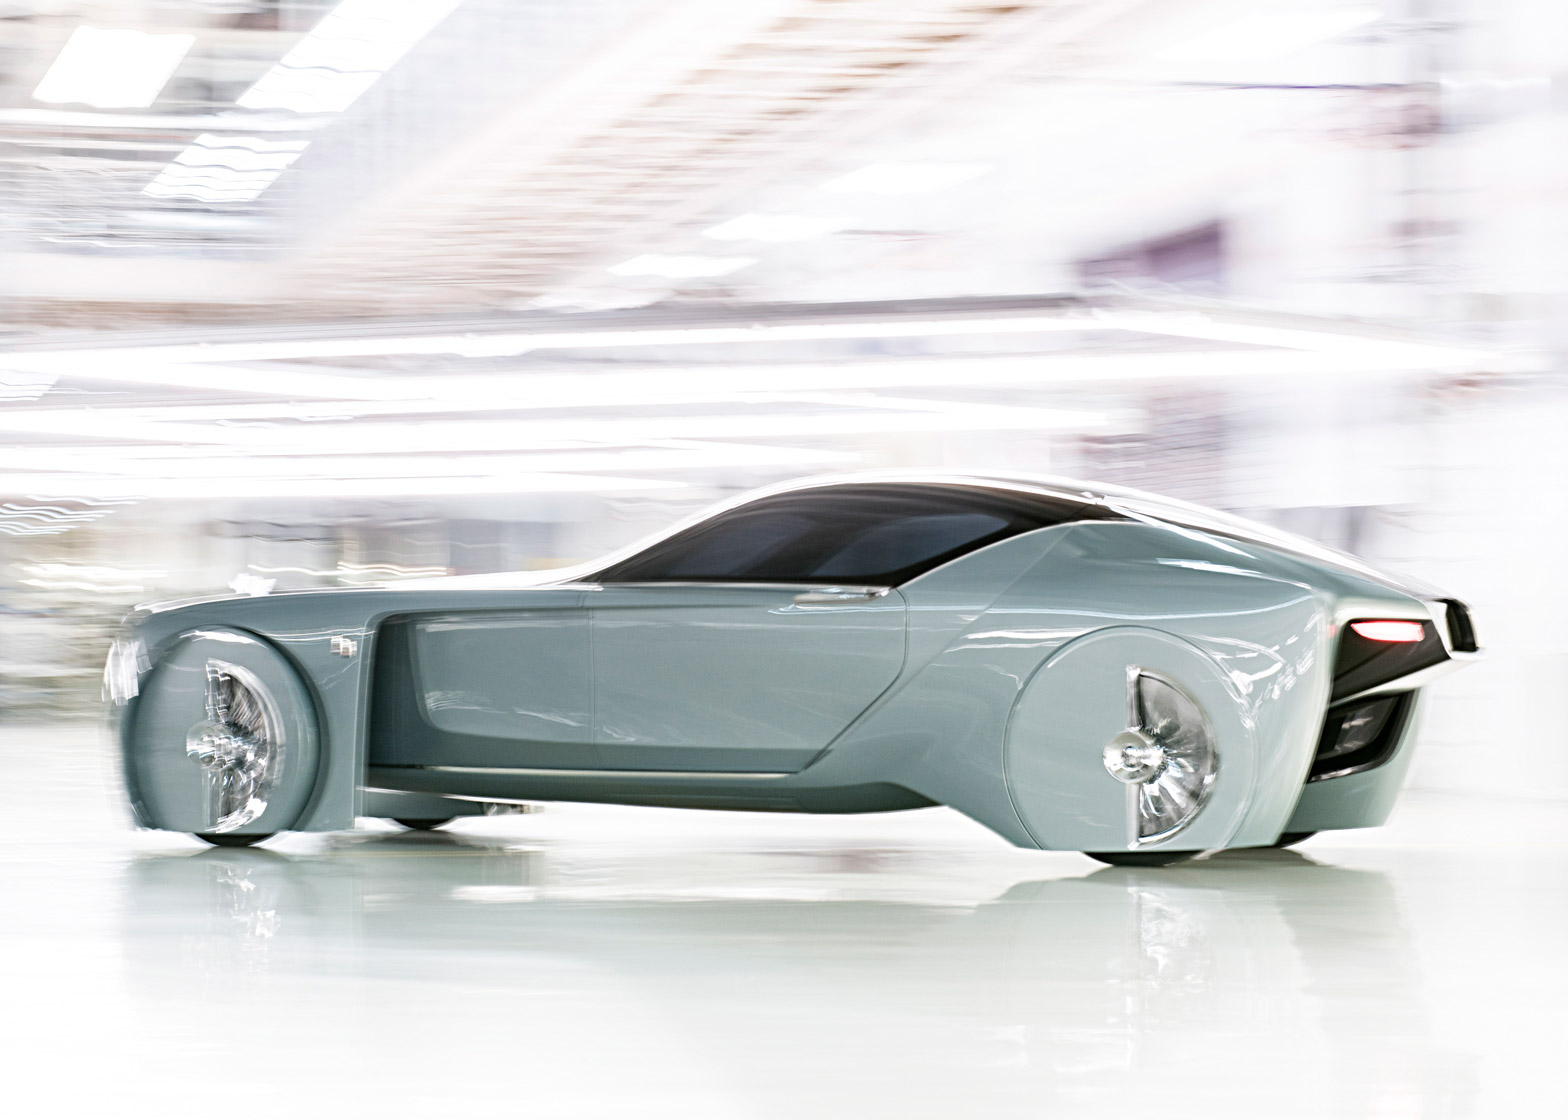 Rolls Royce concept car explores the future of luxury transport